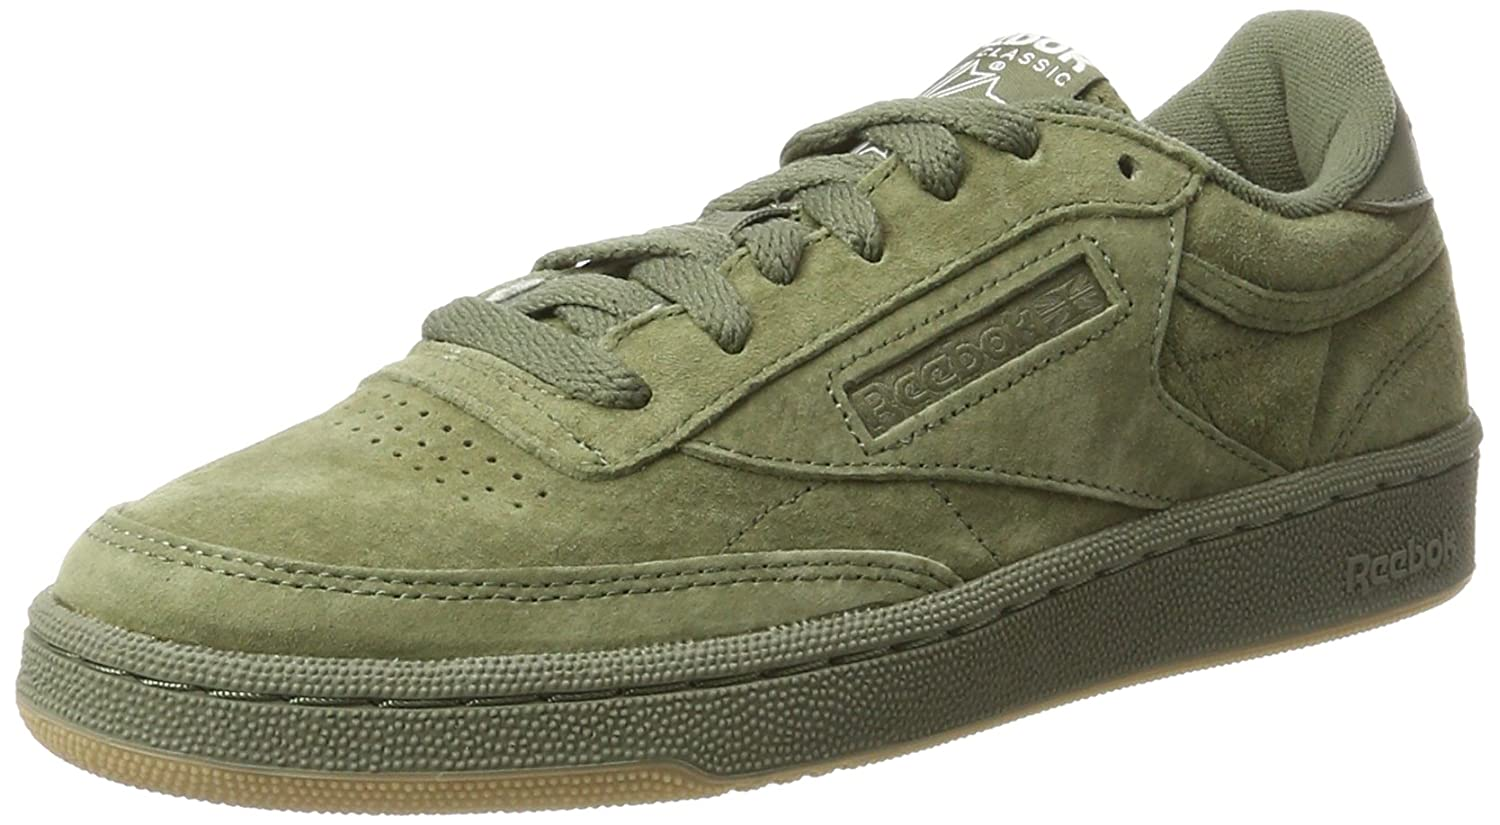 cdacd7b8de42df Reebok Men s Club C 85 Sg Hunter Green White-Gum Leather Tennis Shoes - 11  UK India (45.5 EU) (12 US)  Buy Online at Low Prices in India - Amazon.in